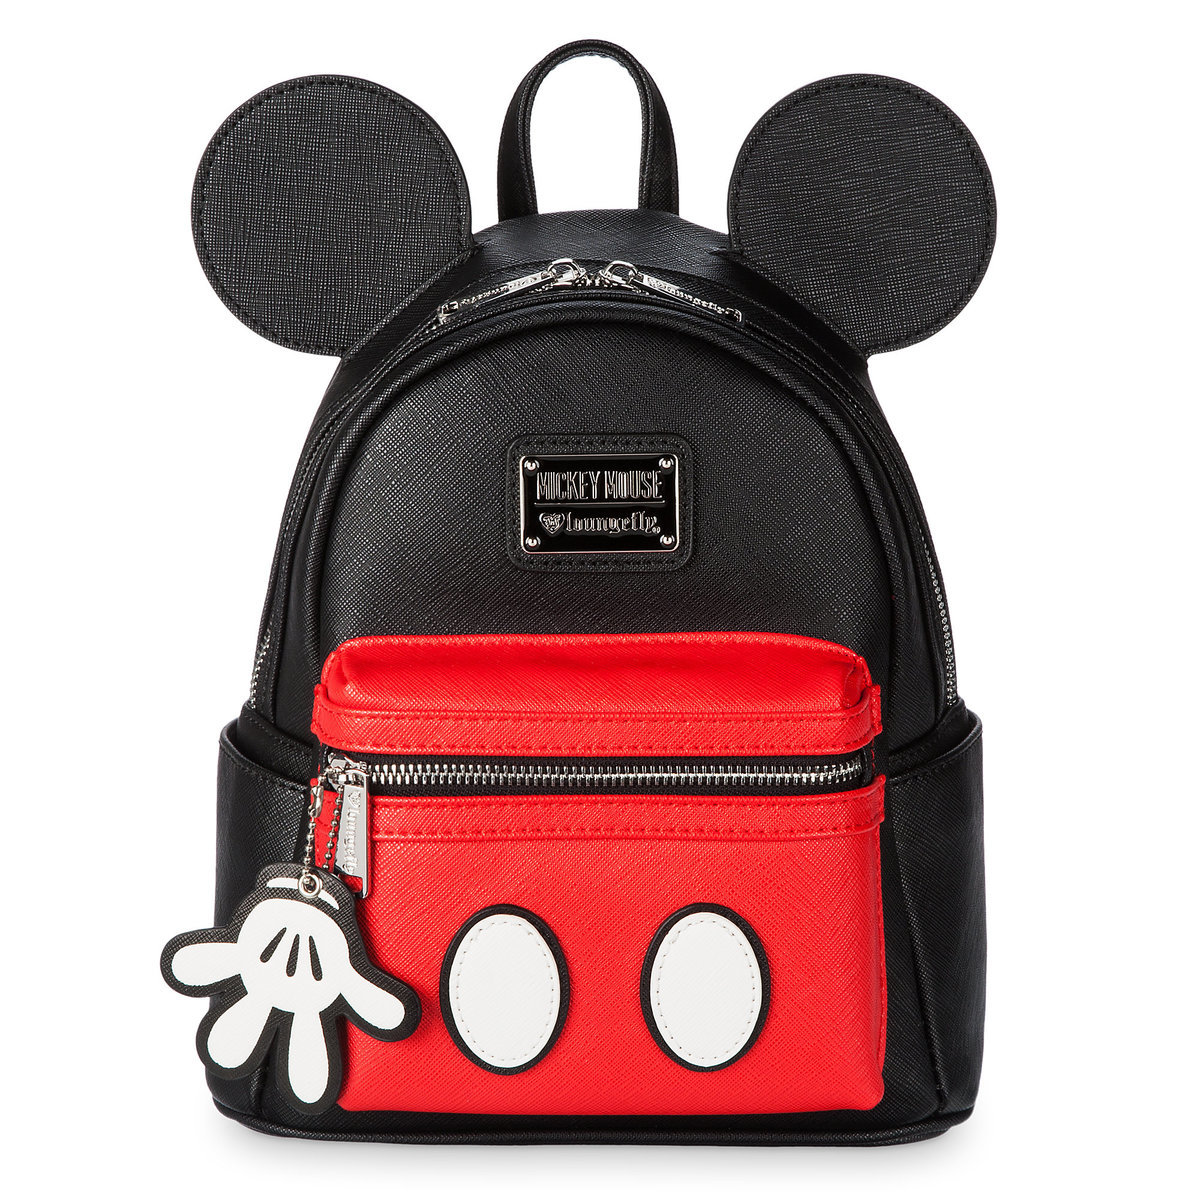 7642887ac74 Product Image of Mickey Mouse Mini Backpack by Loungefly   1